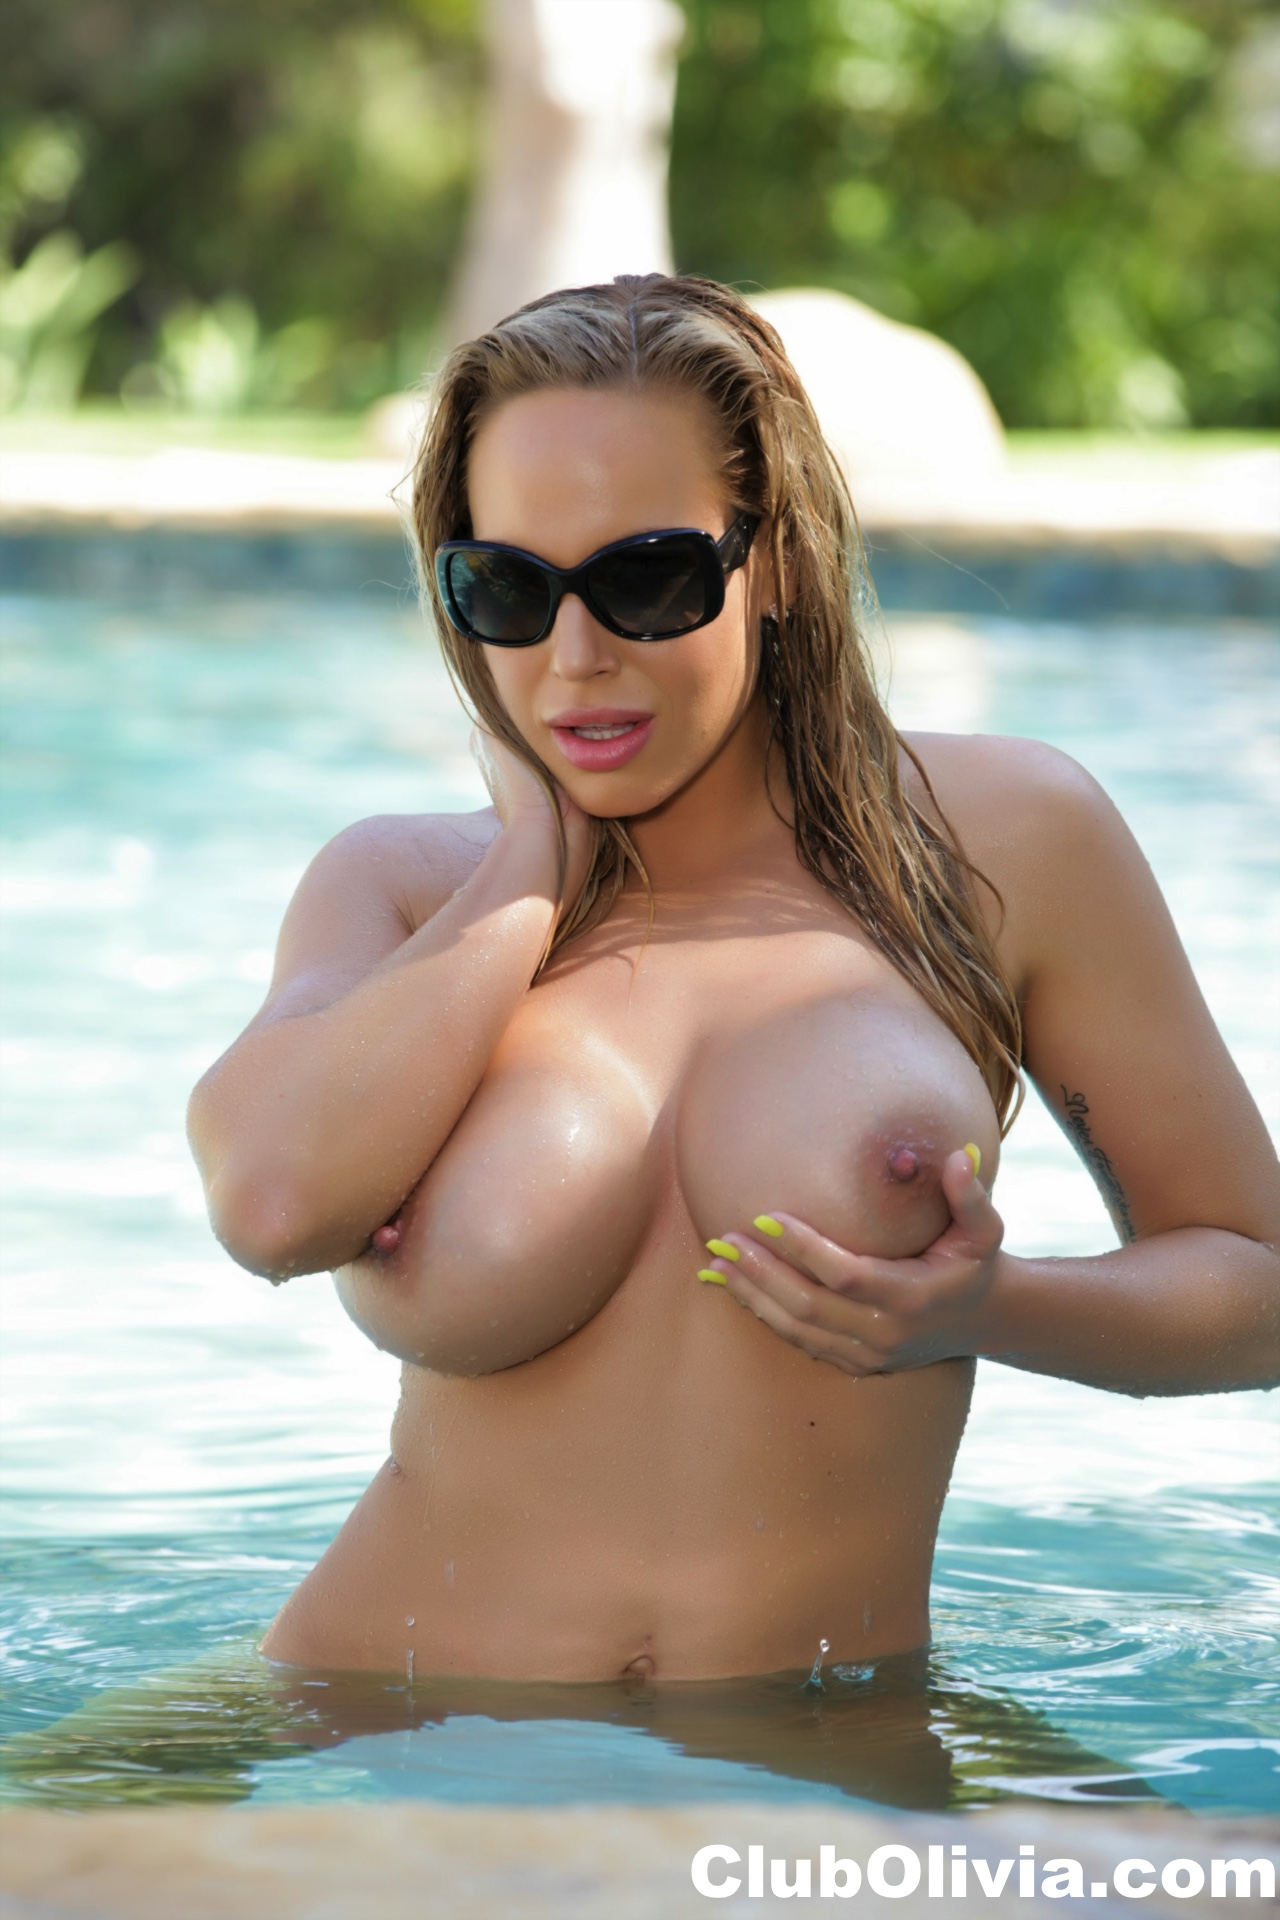 Gallery: Olivia Austin getting her big tits naked by the pool